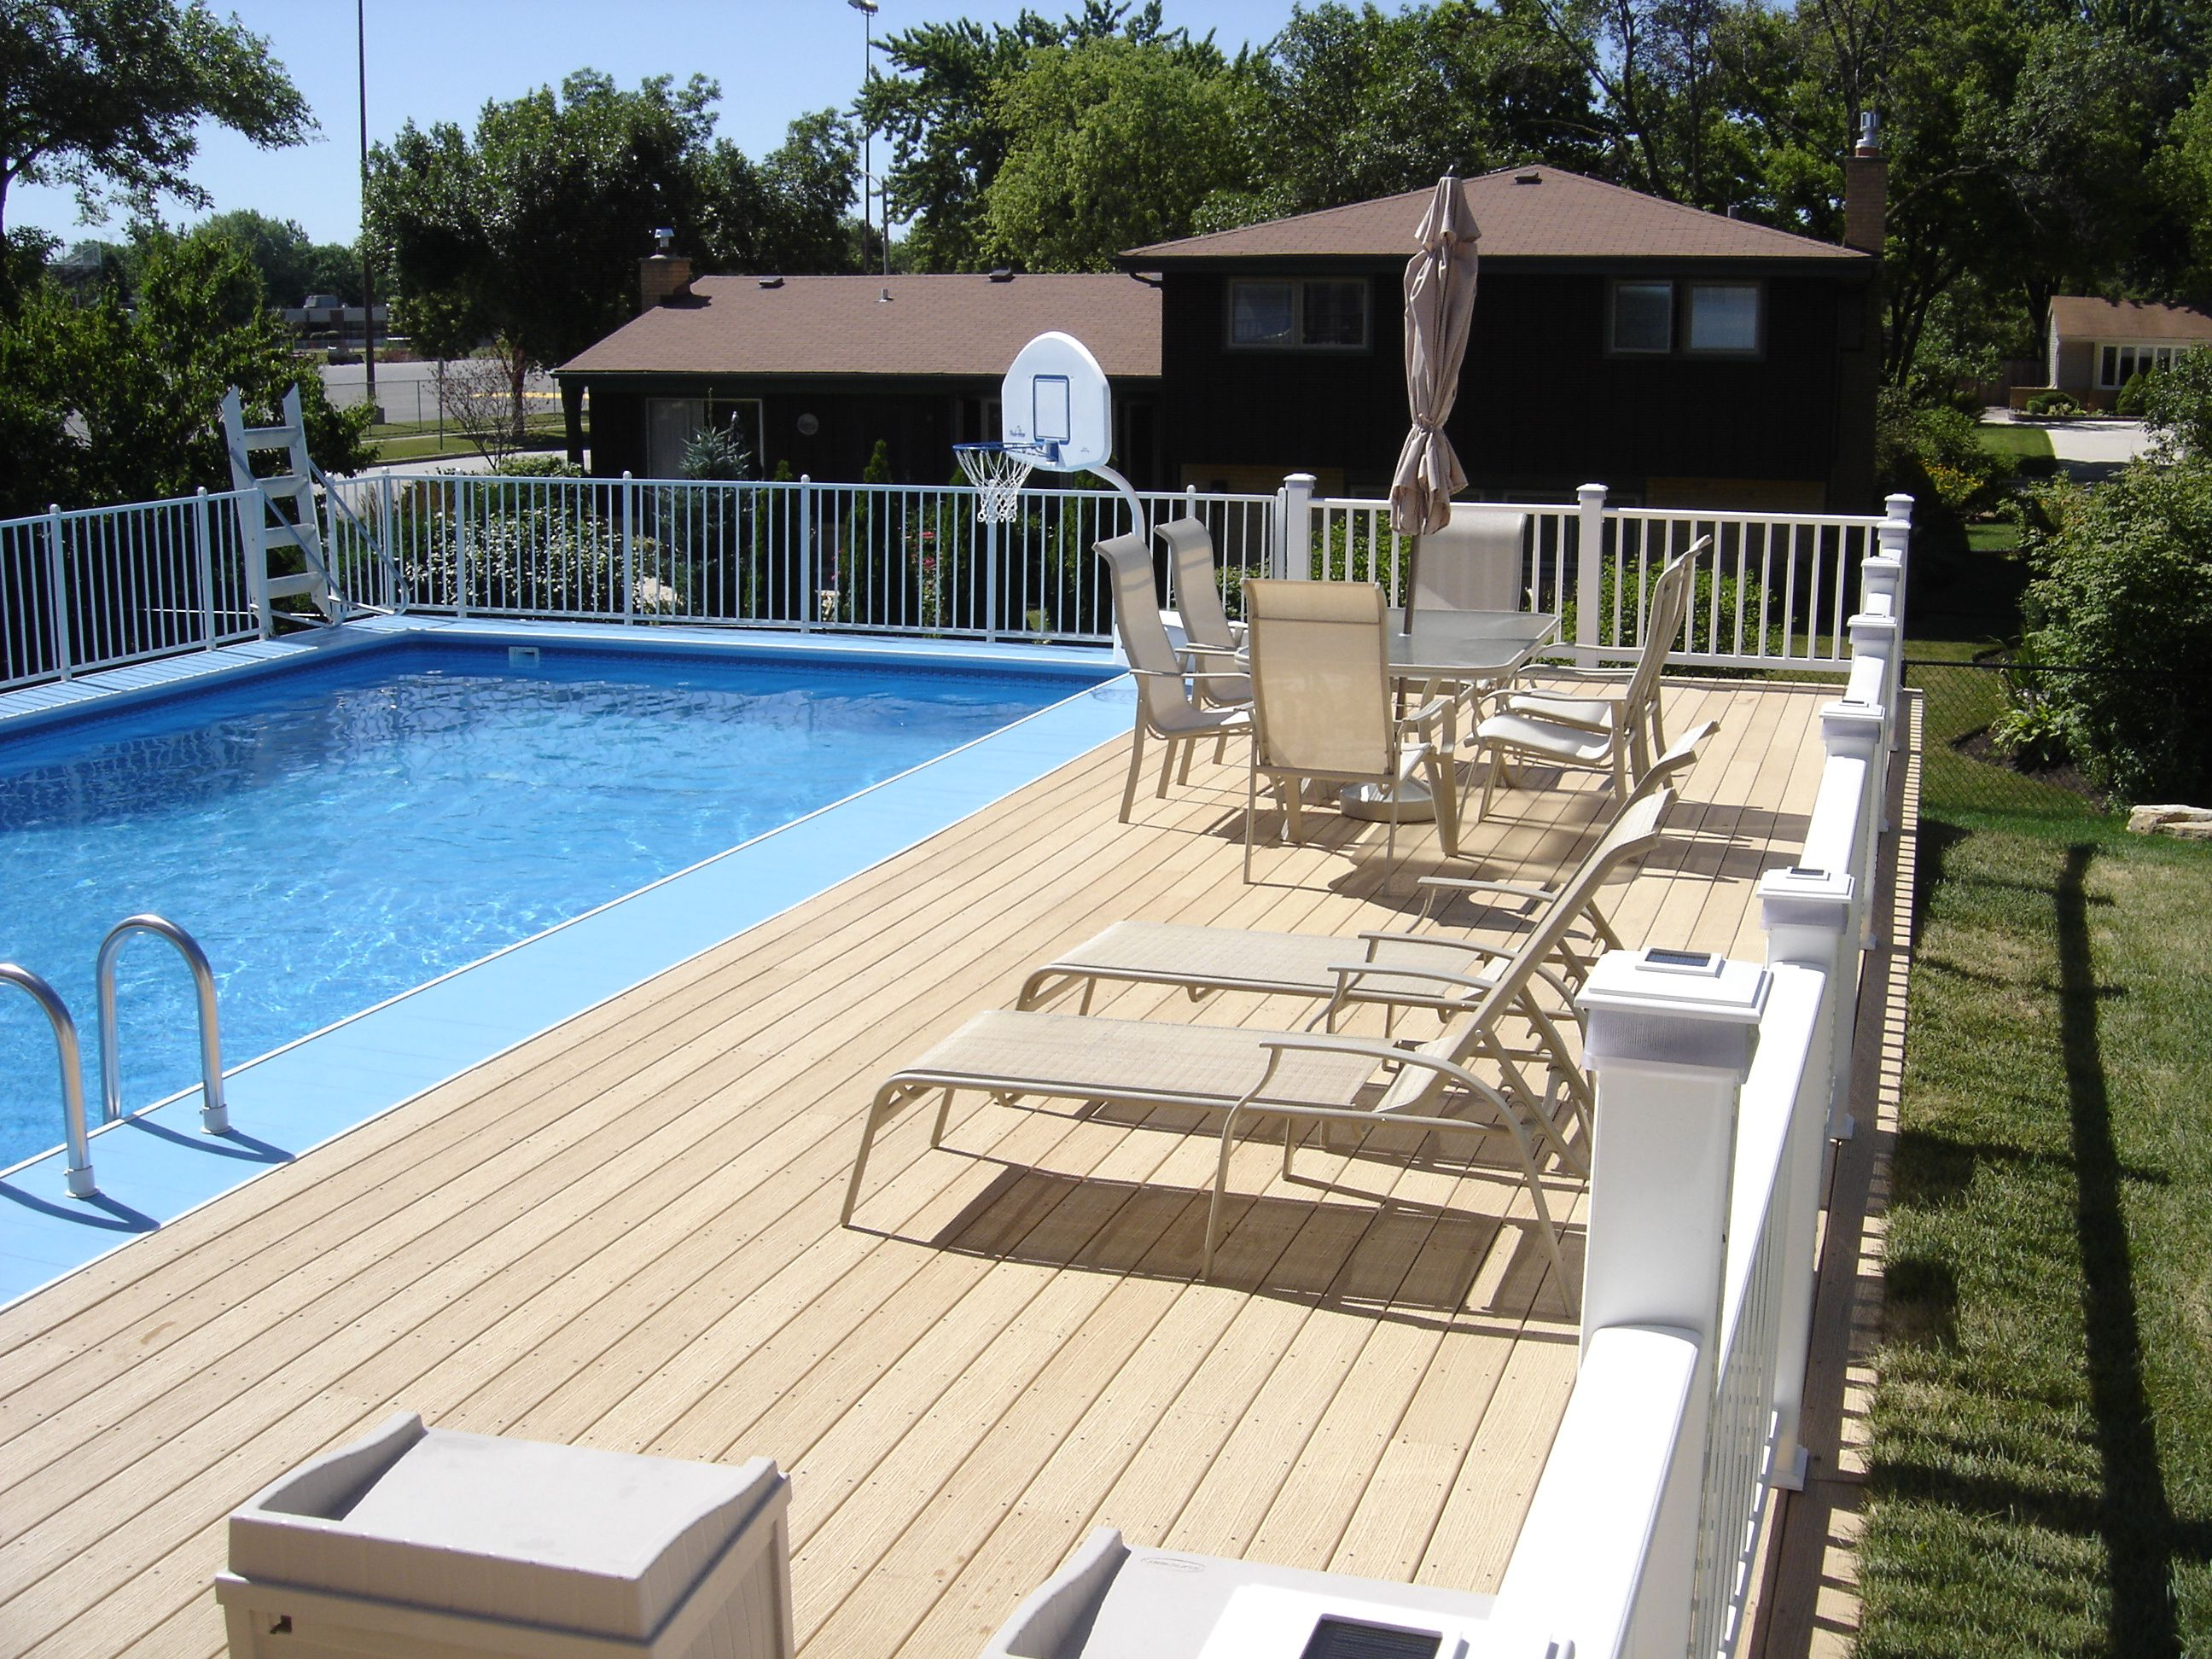 Above Ground Pool Decks From House small yard above ground pool designs | above ground swimming pool